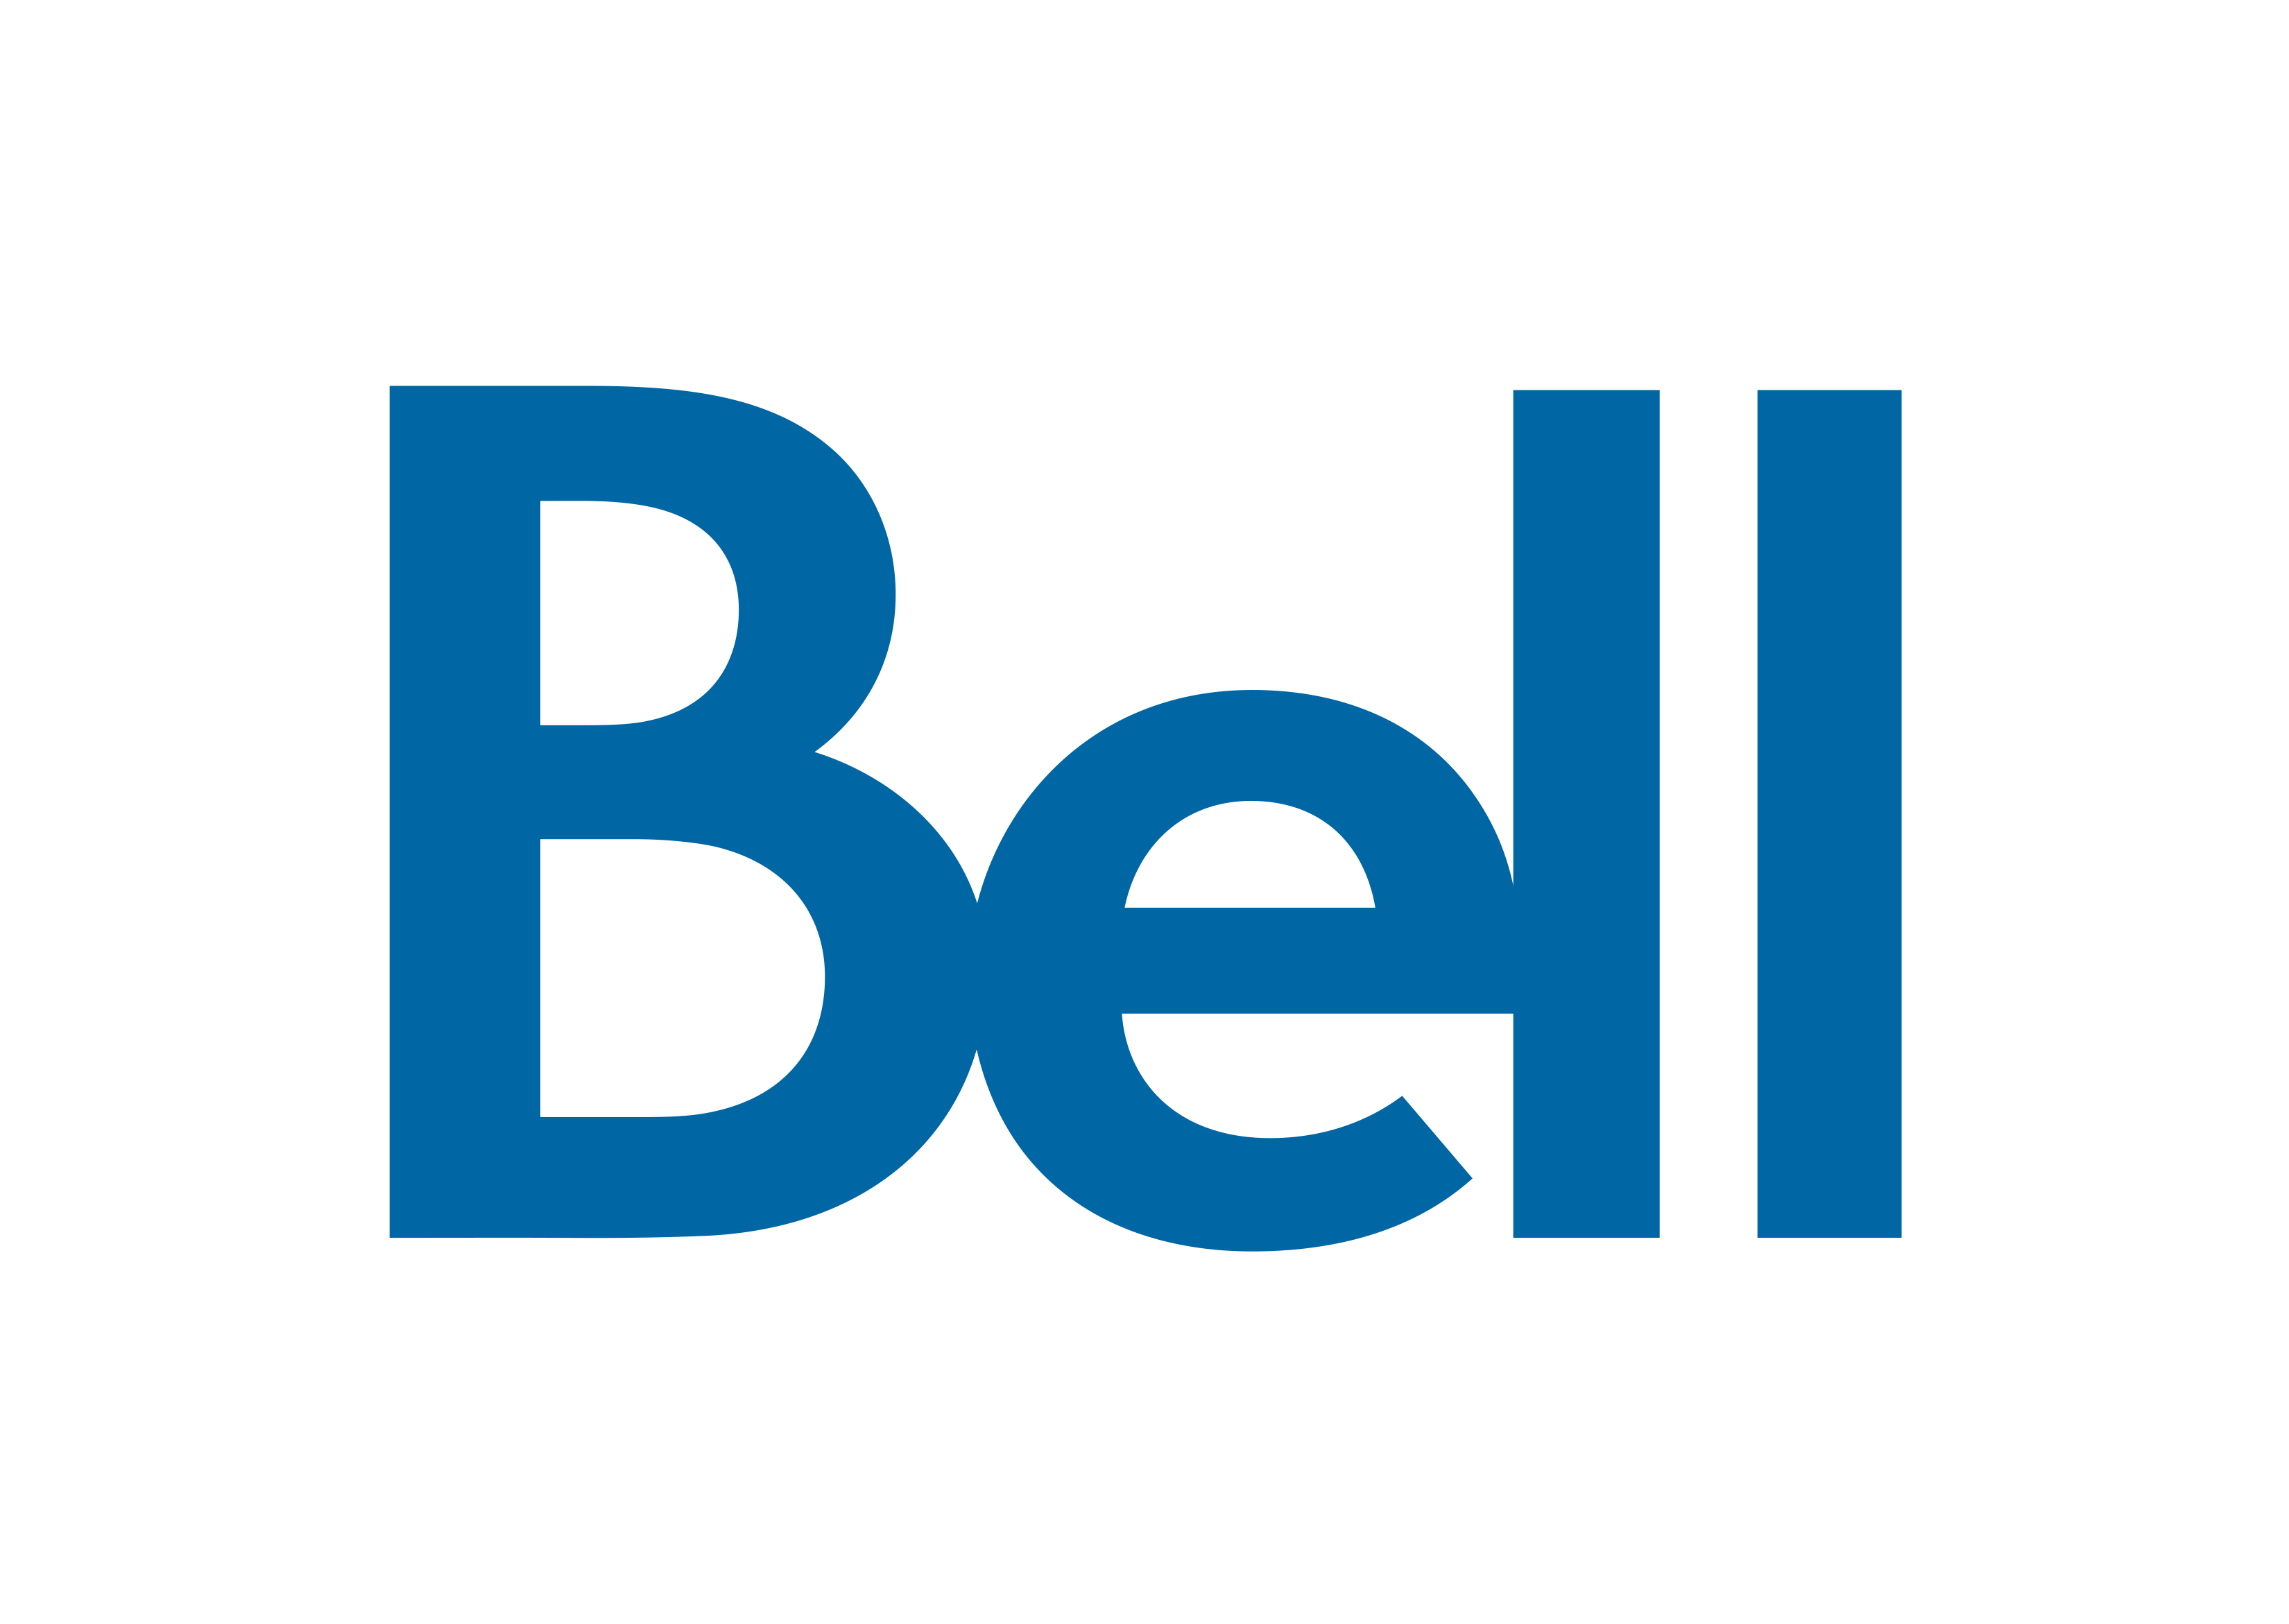 Logo Image for Bell Canada